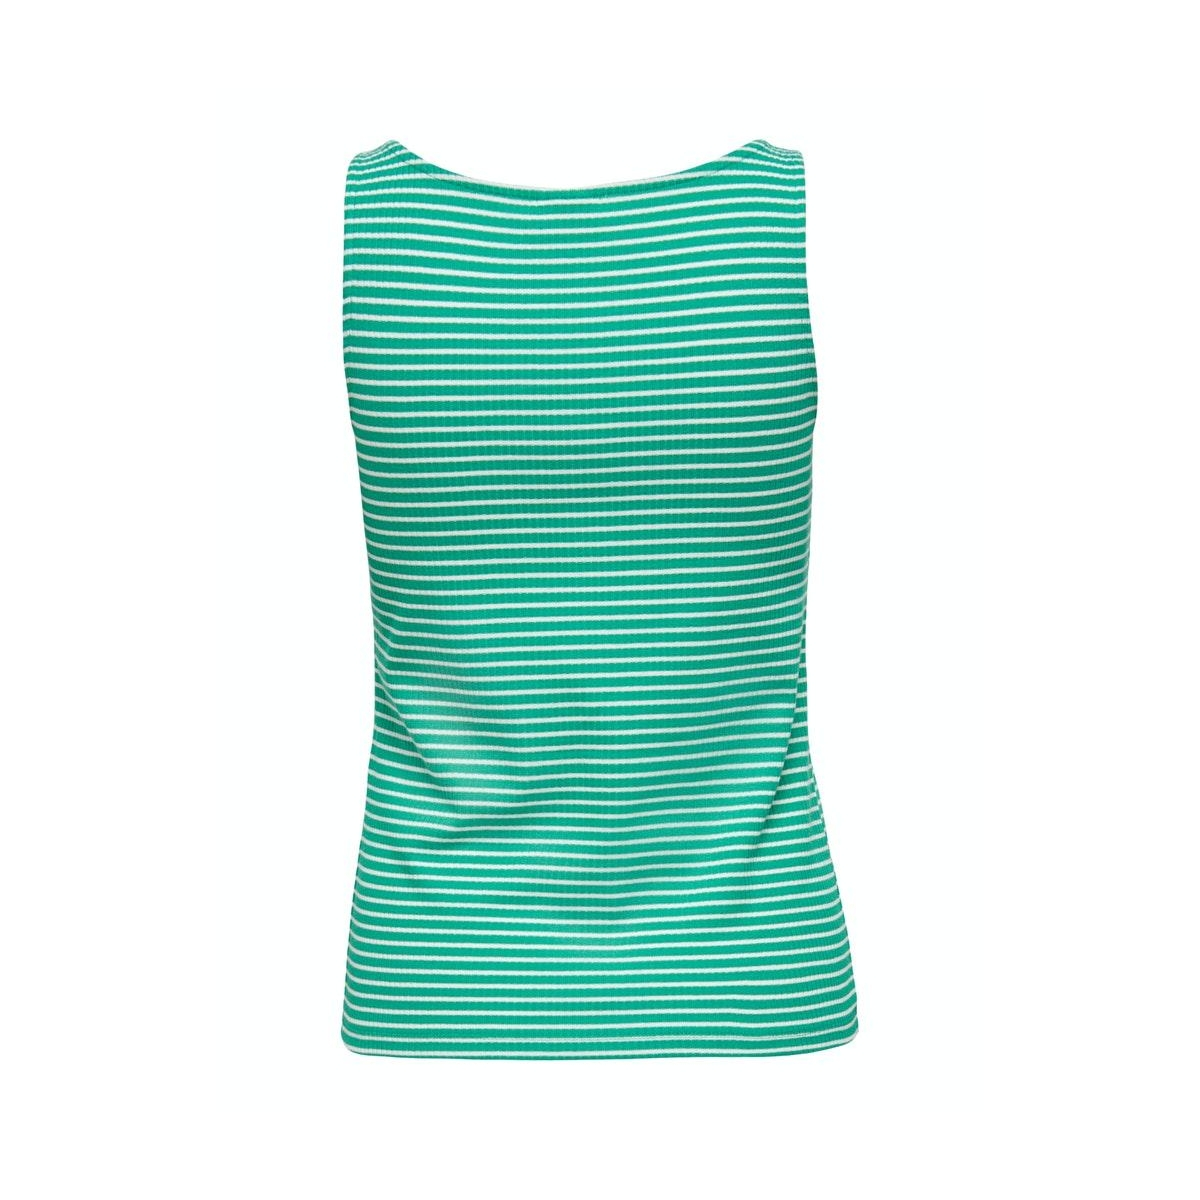 jdynevada life button tank top jrs 15199215 jacqueline de yong top sea green/cloud danc